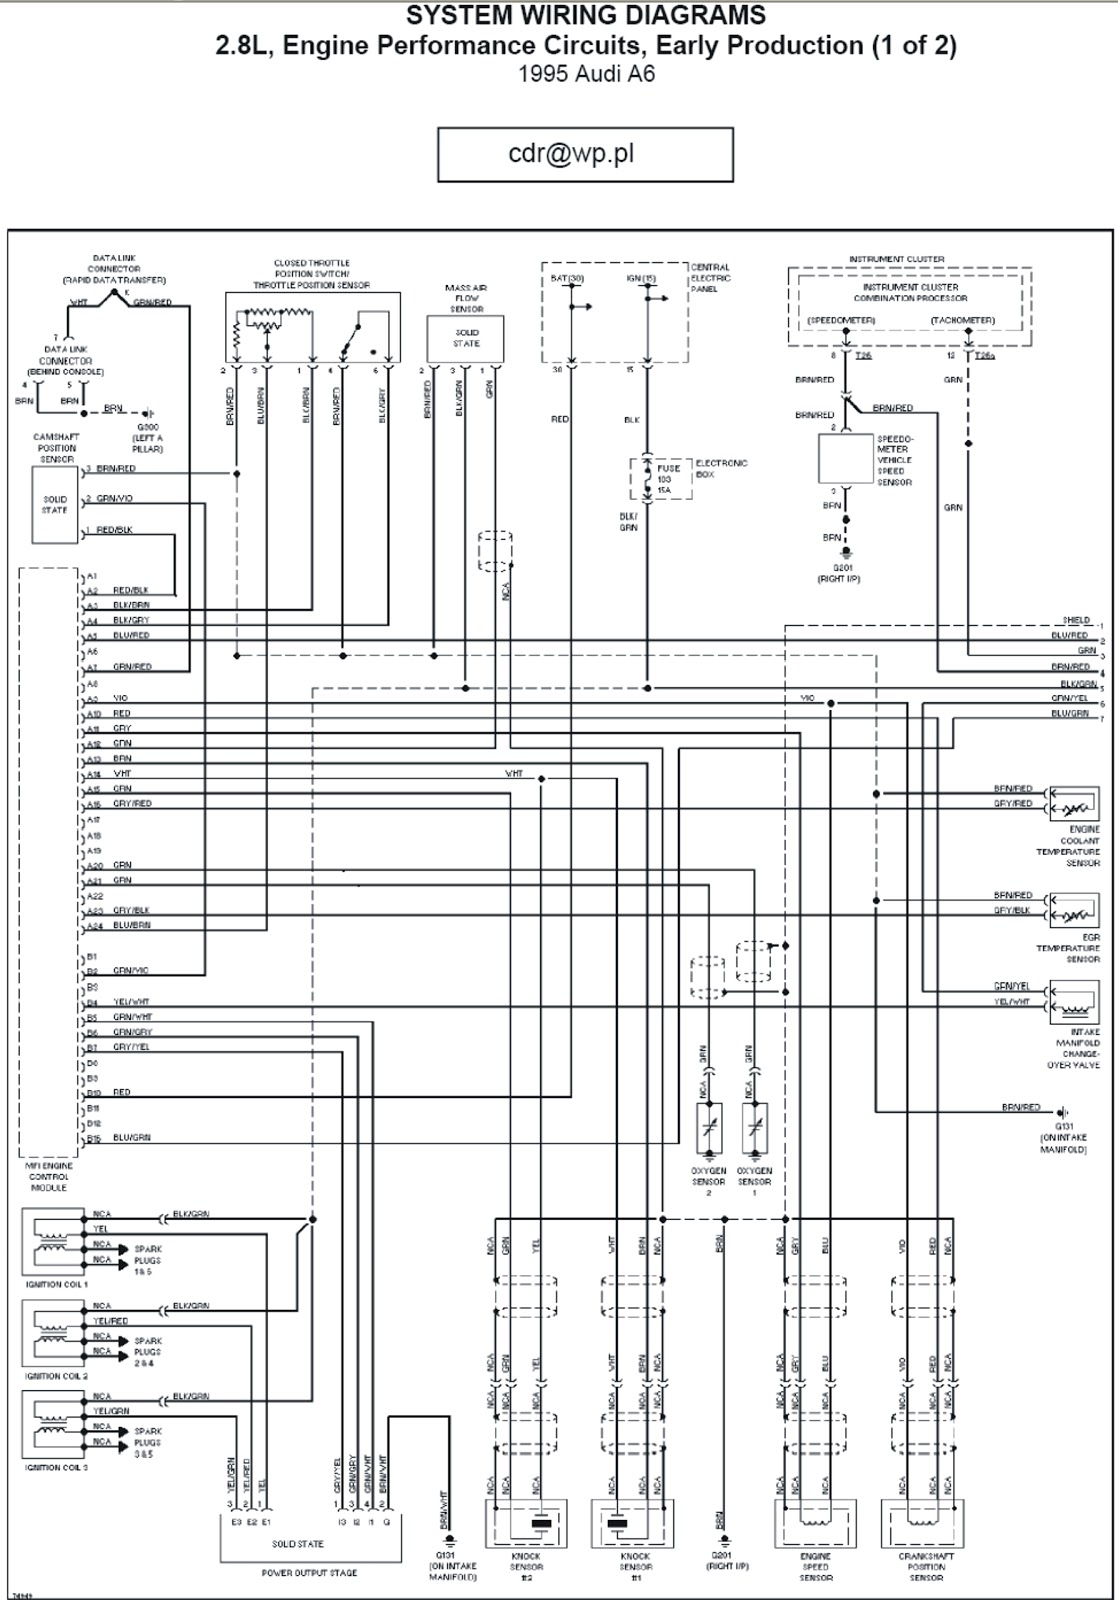 1996 audi a4 wiring diagram wiring diagram for you e32 wiring diagram 1996 mercedes e320 wiring diagram [ 1118 x 1600 Pixel ]